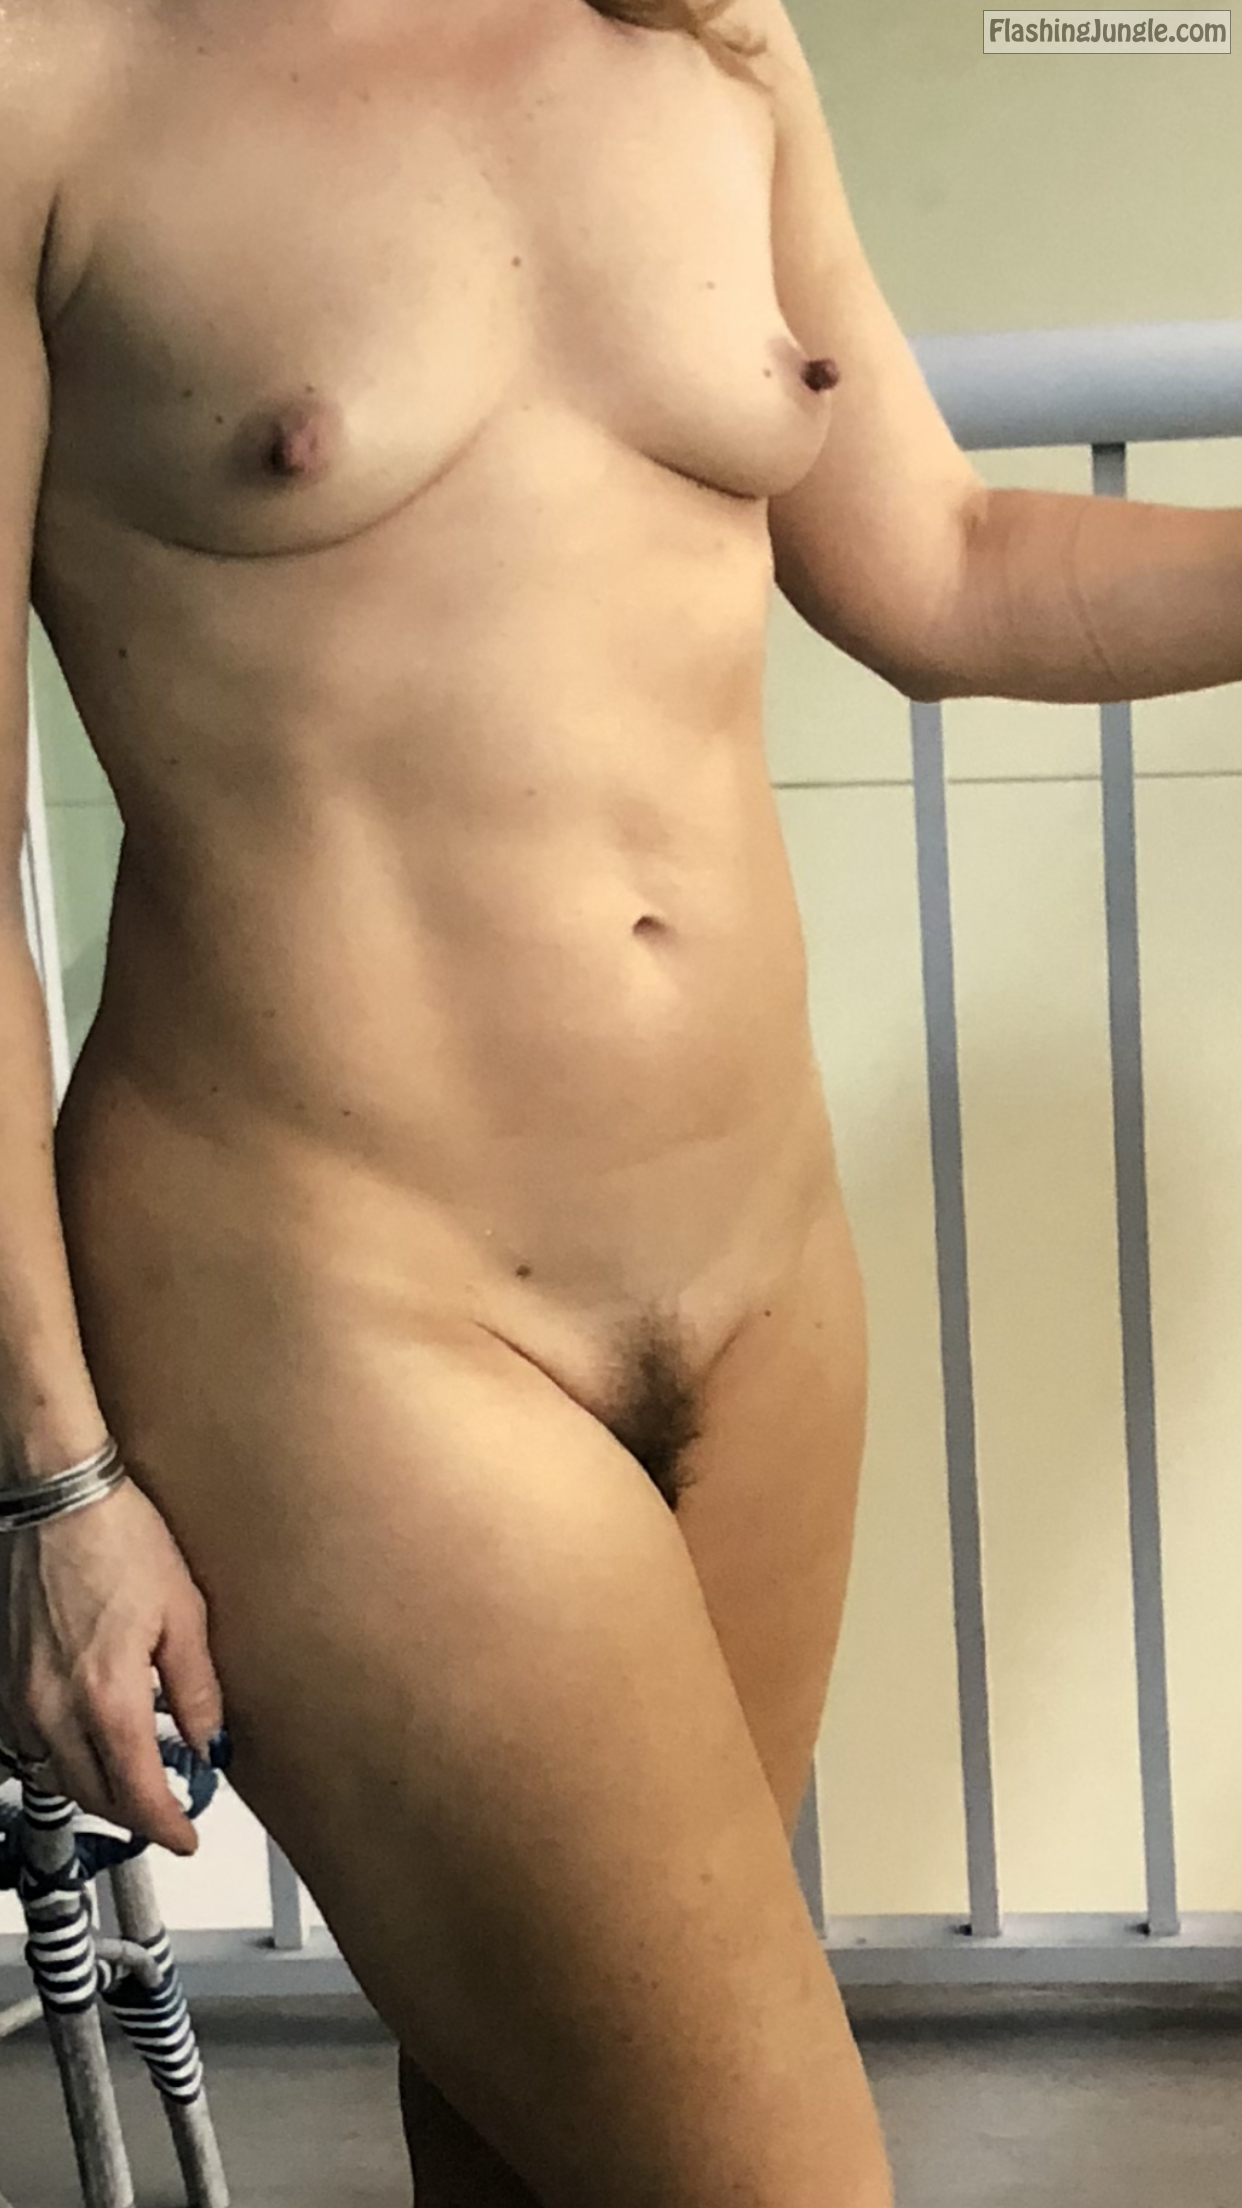 Real Amateurs MILF Flashing Pics Hotwife Pics